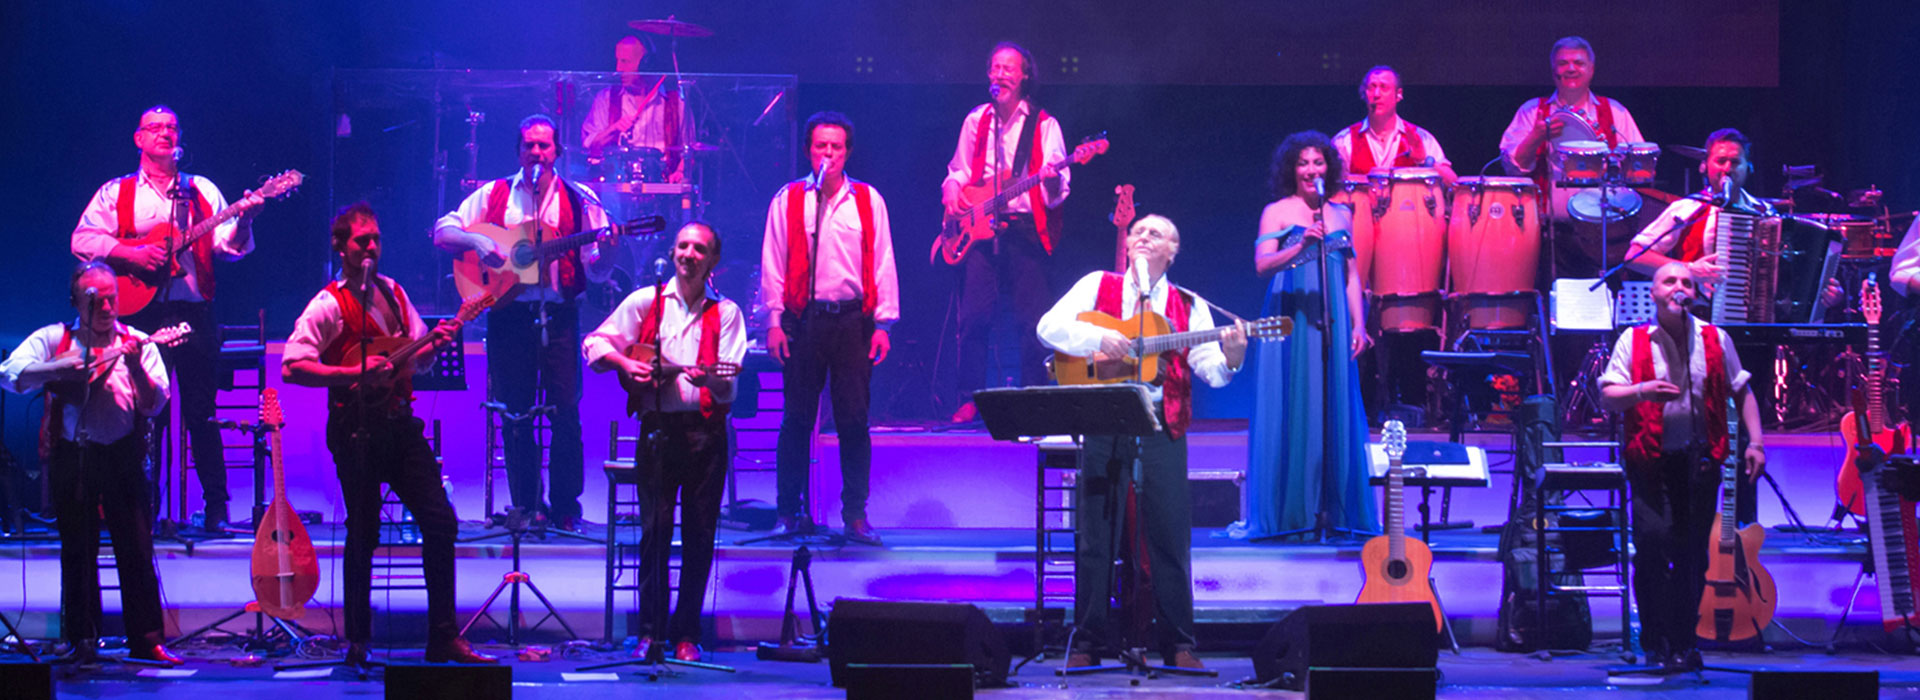 Renzo Arbore and l'Orchestra Italiana on stage at Forte Arena